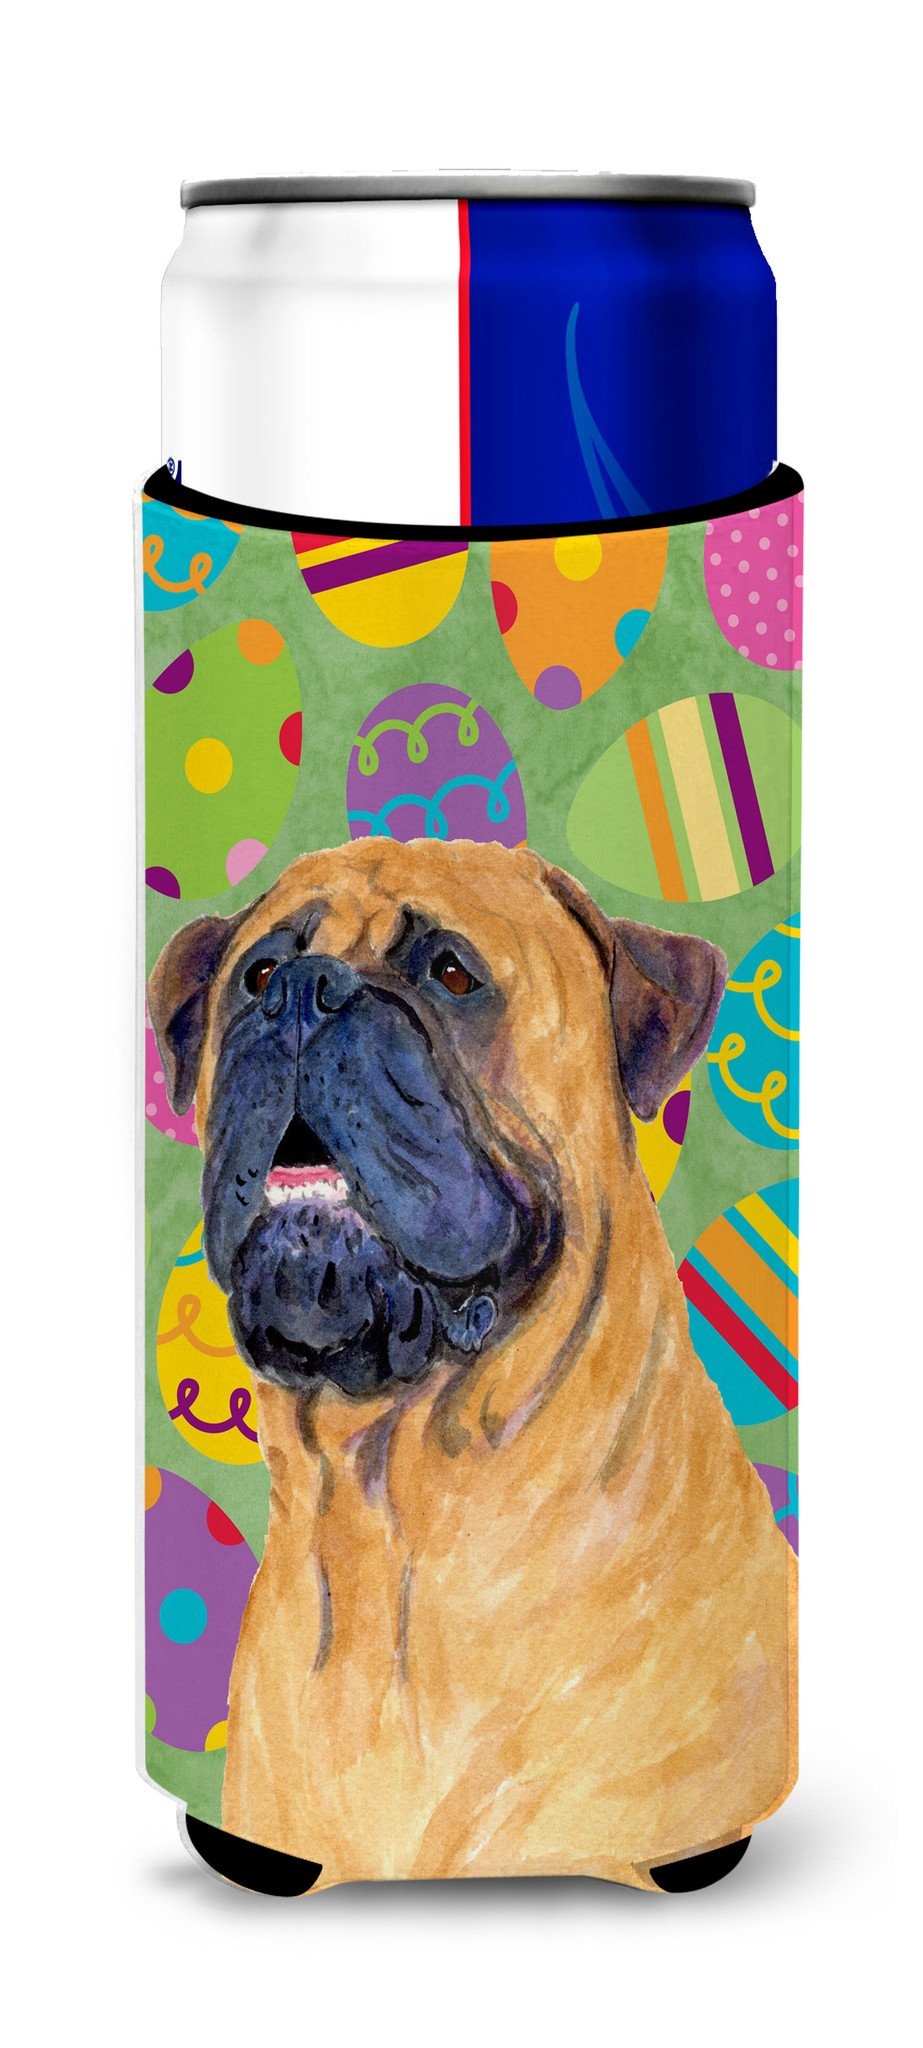 Mastiff Easter Eggtravaganza Ultra Beverage Insulators for slim cans SS4865MUK by Caroline's Treasures